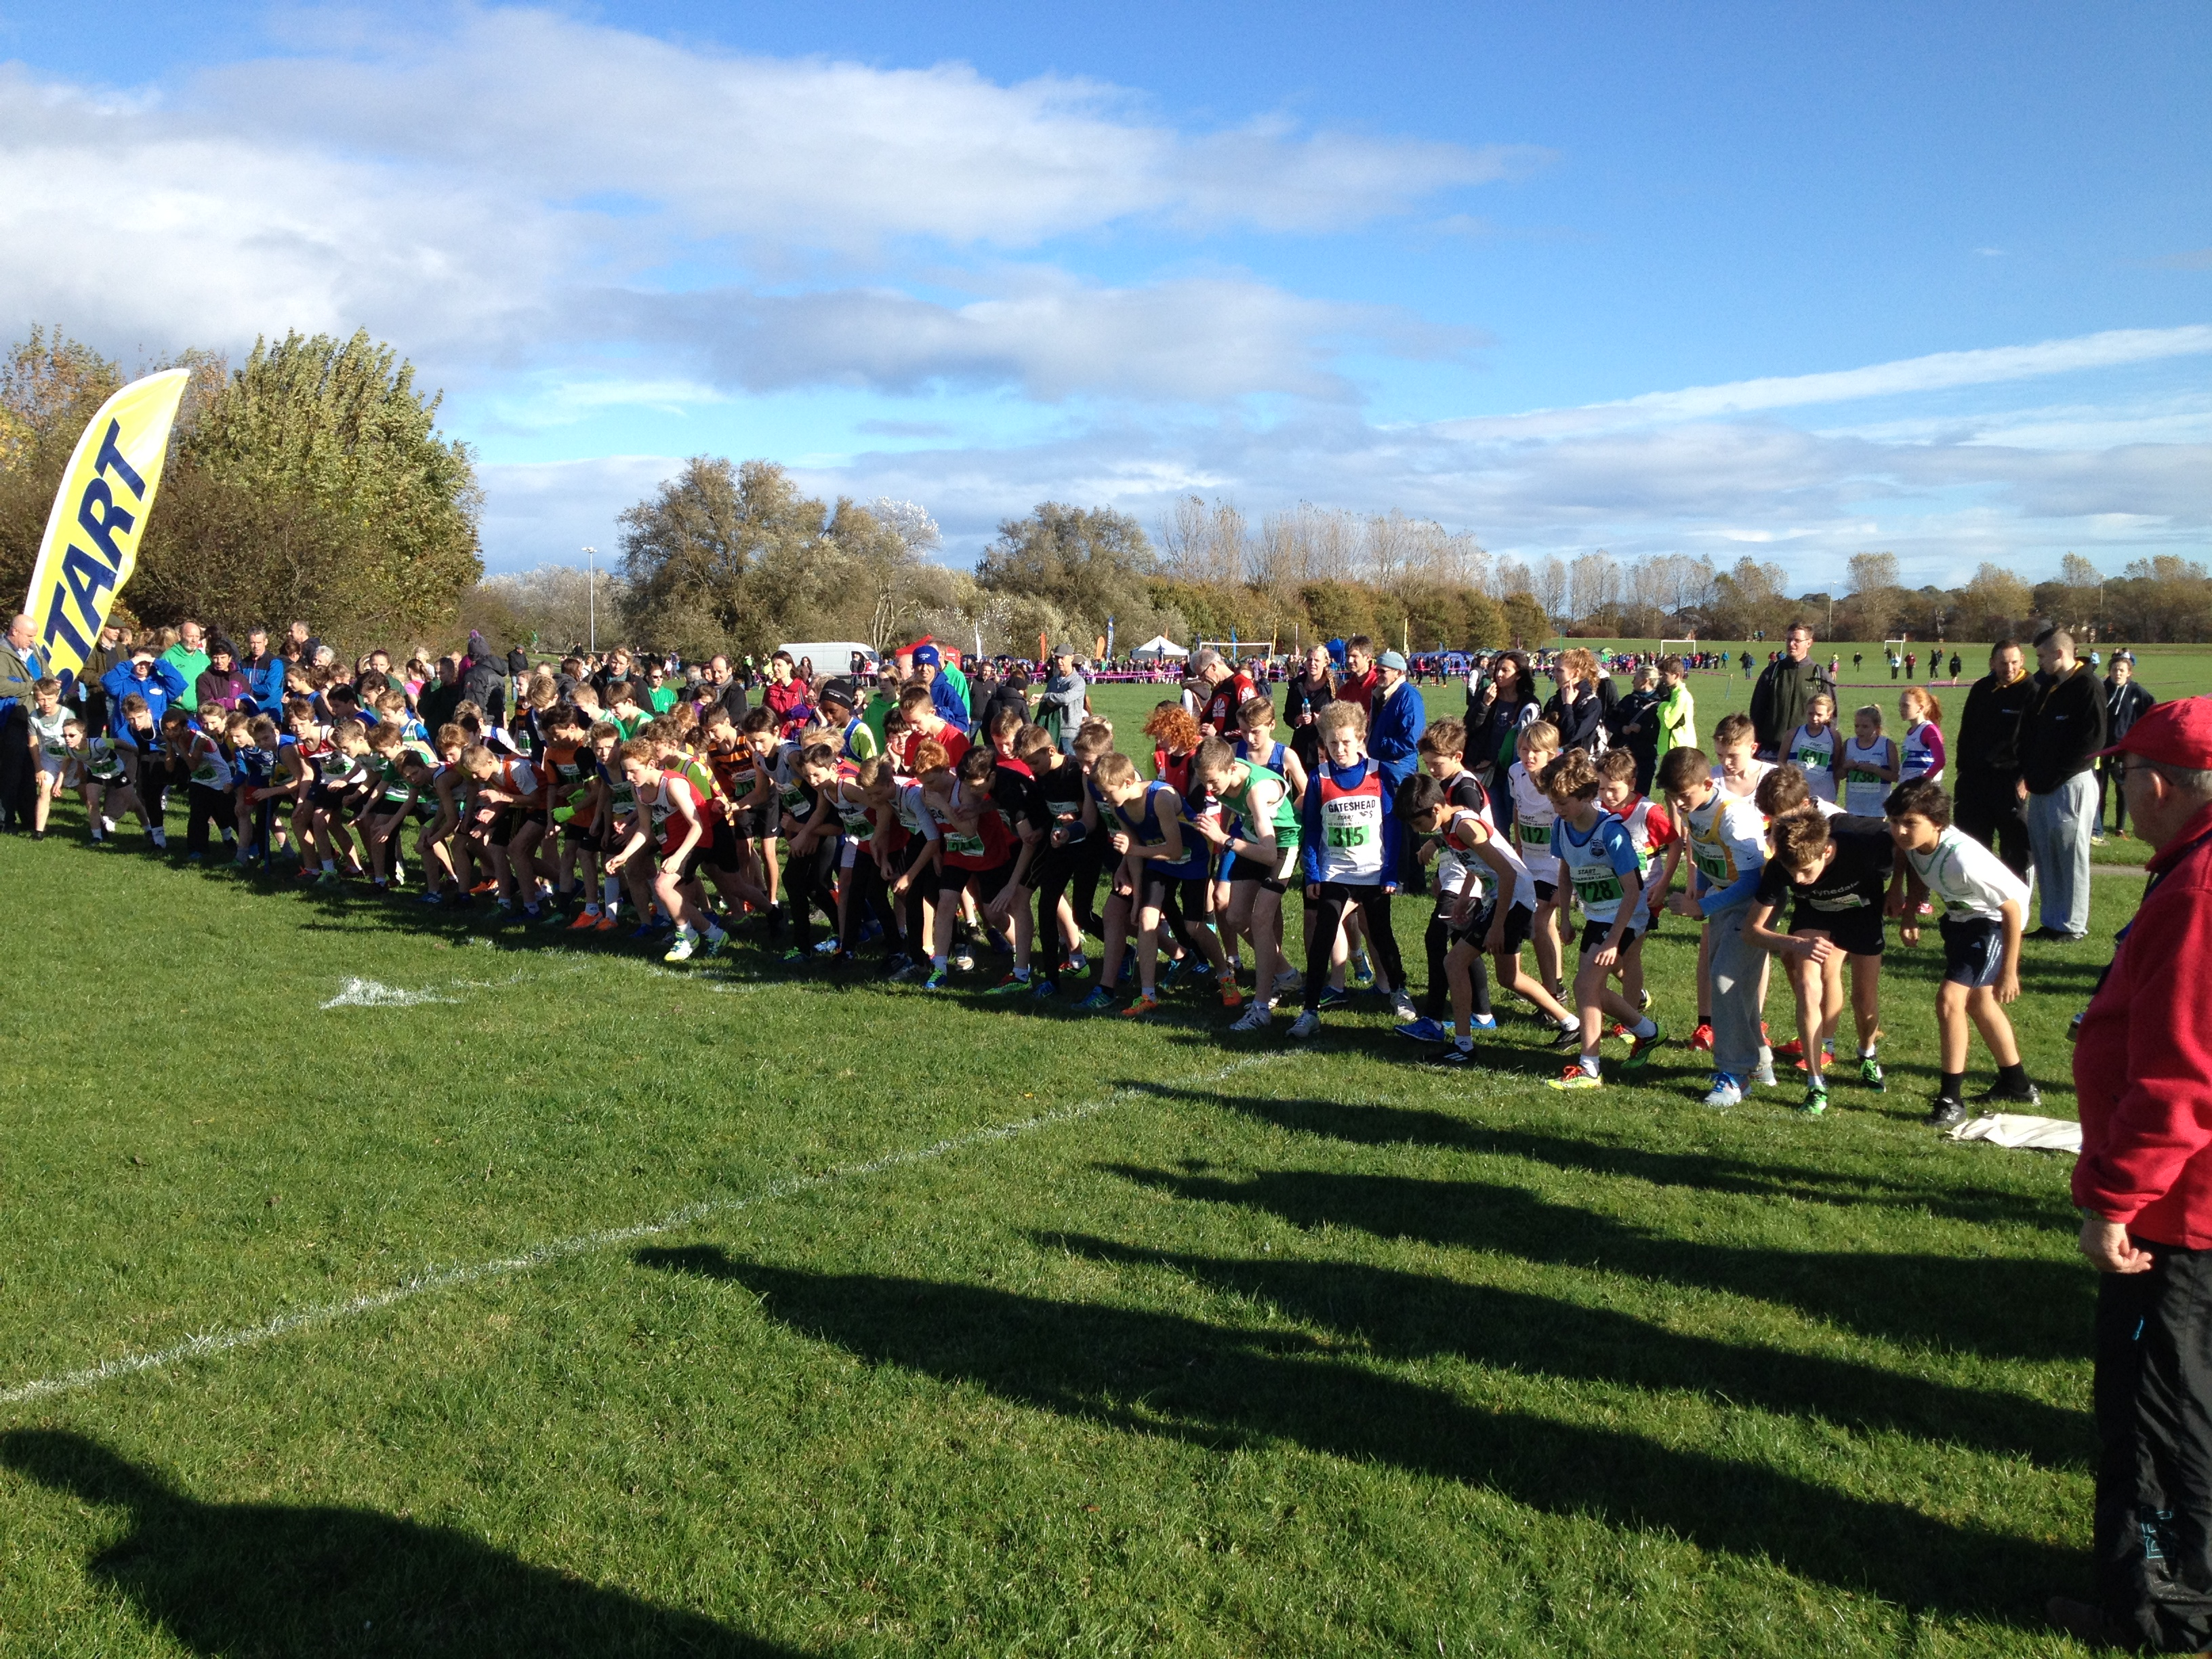 Start of the U13 Boy's race.